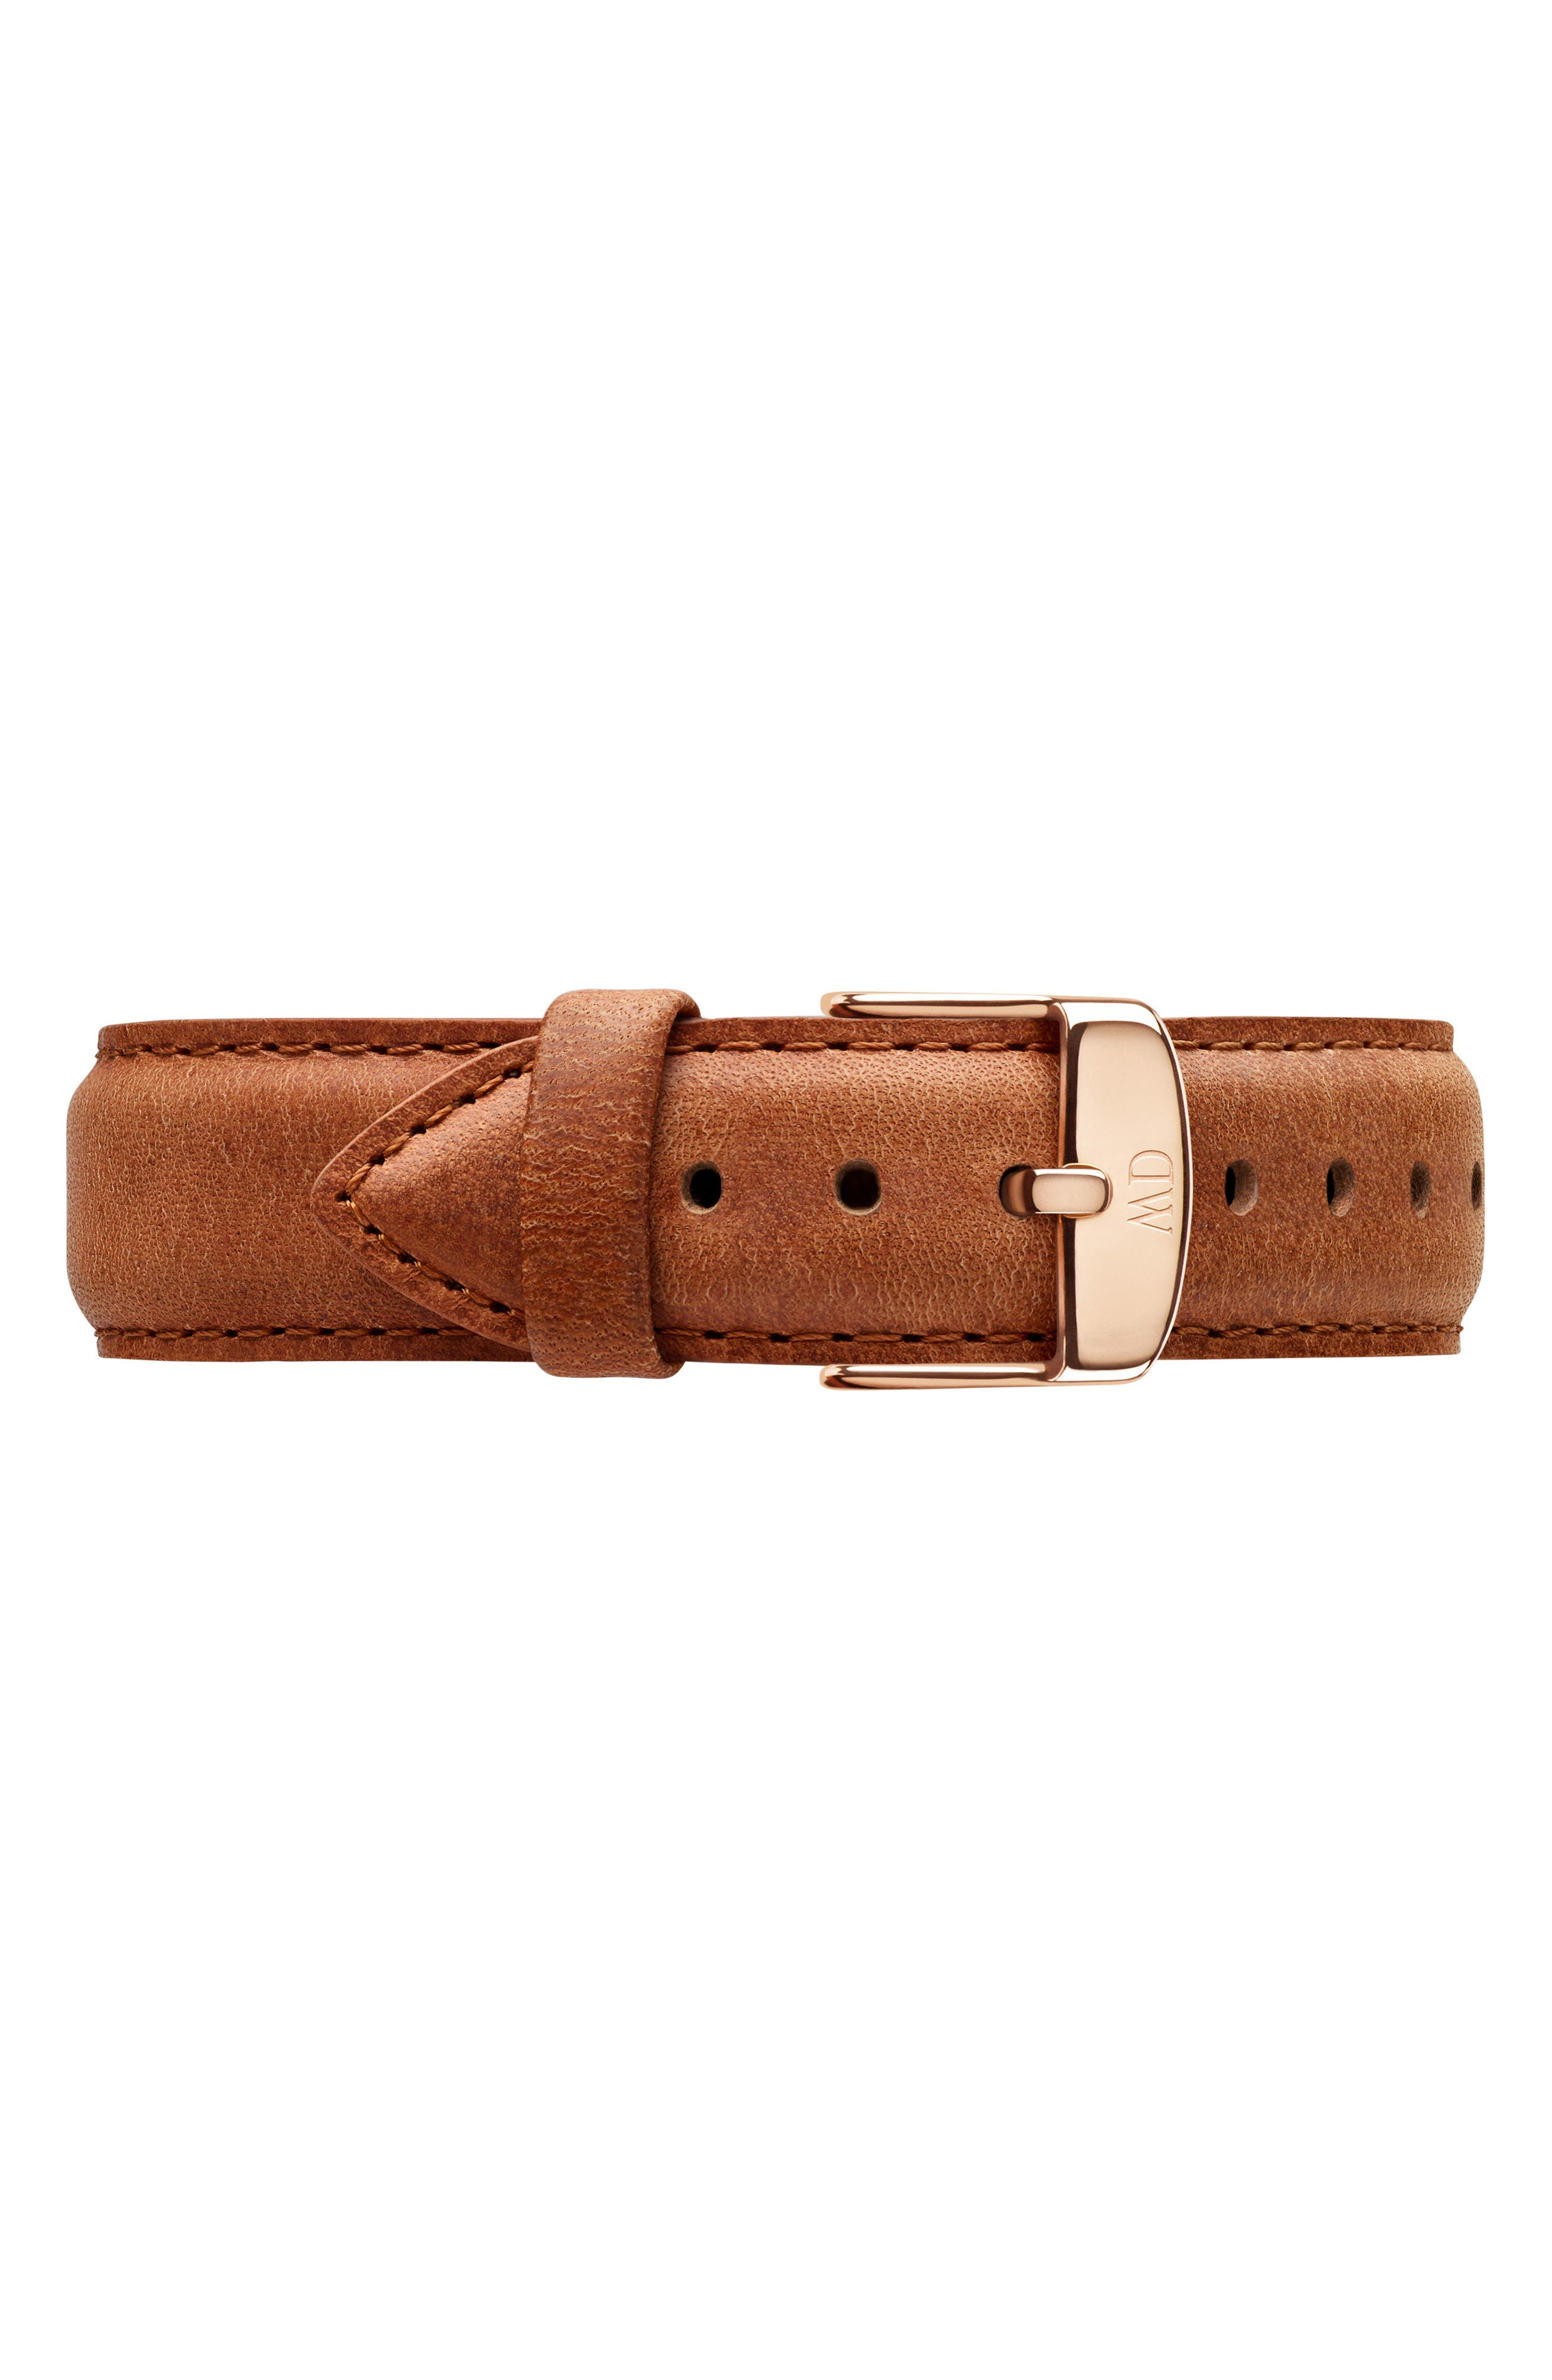 18mm Classic Durham Leather Watch Band